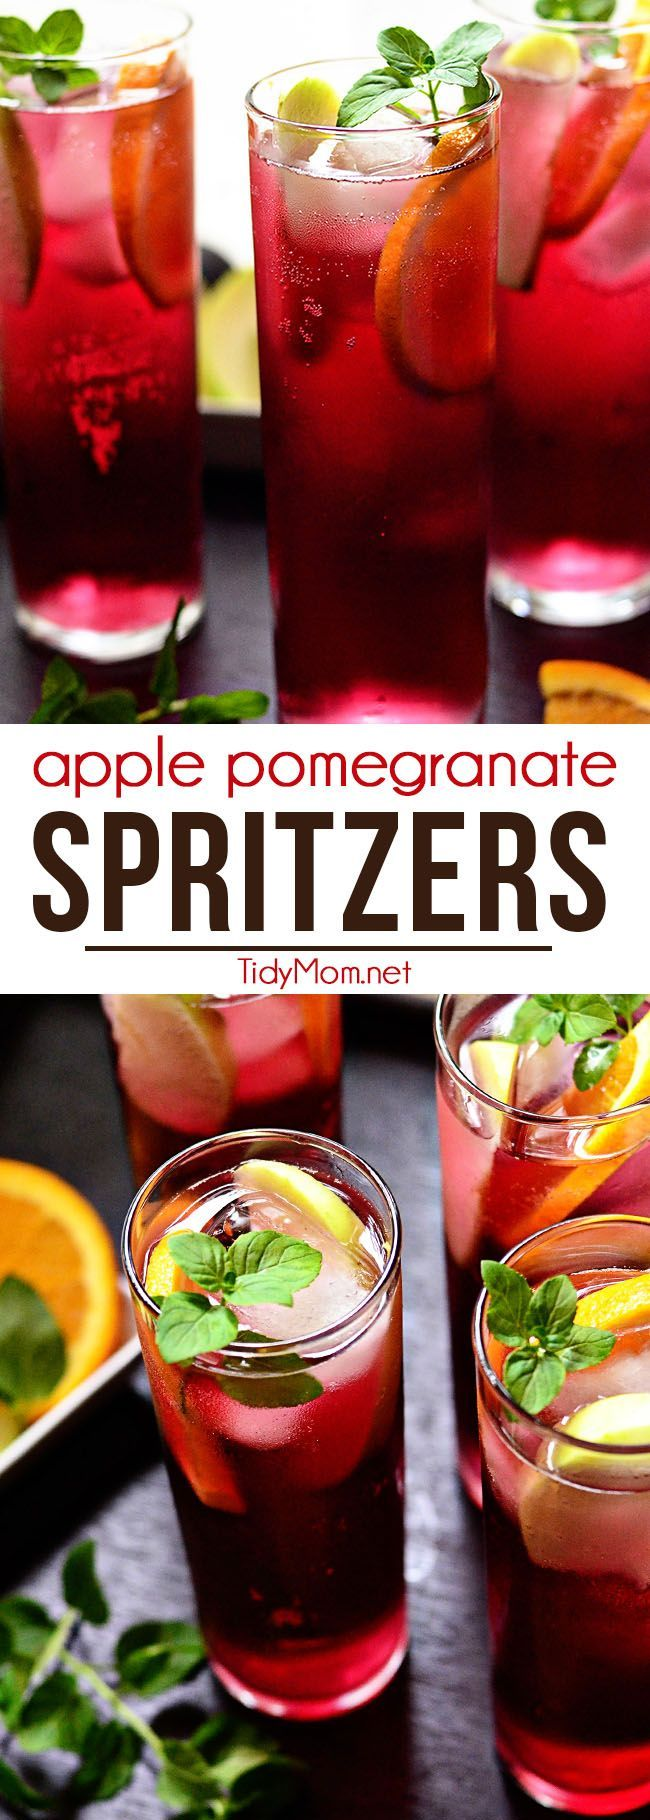 Apple Pomegranate Spritzers are fizzy, fruity and full of antioxidants (hello pomegranate!) and non-alcoholic. You could swap out the lemon-lime soda for white wine if you'd prefer a boozy version. Perfect for any occasion! Print this simple and refreshing cocktail recipe at TidyMom.net